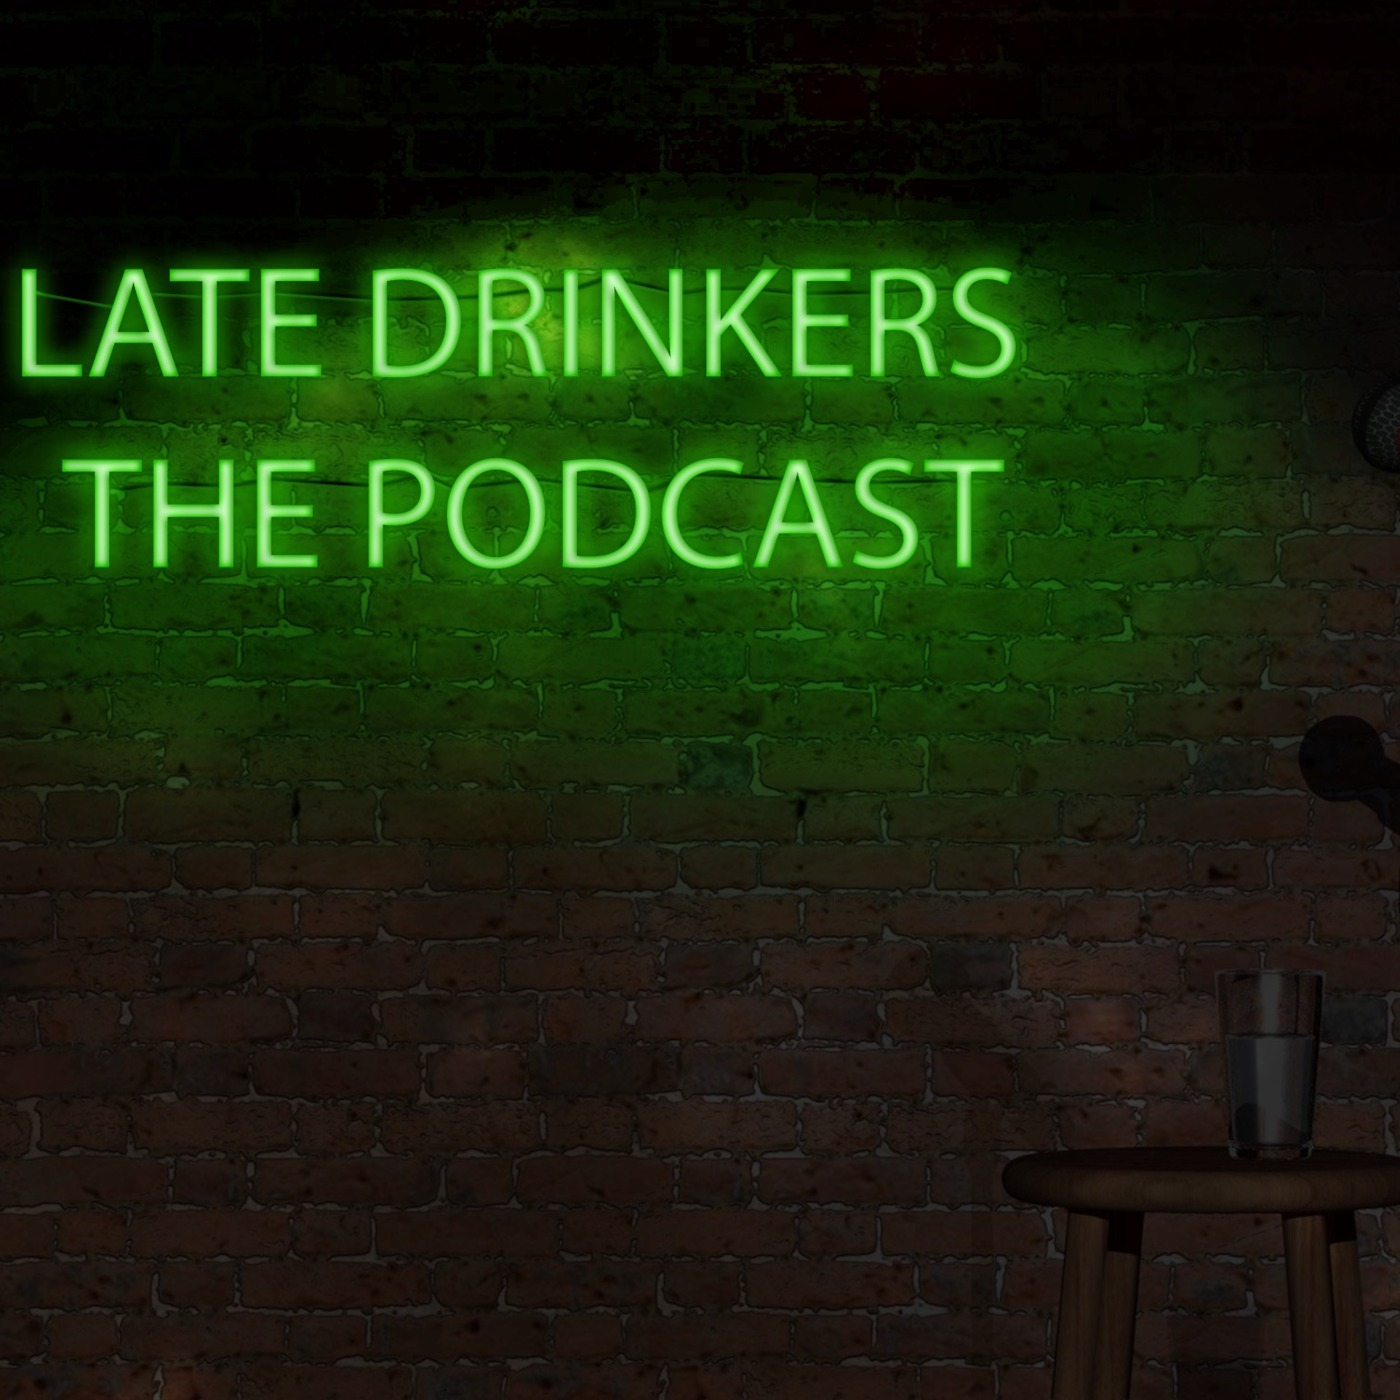 Late Drinkers Podcast